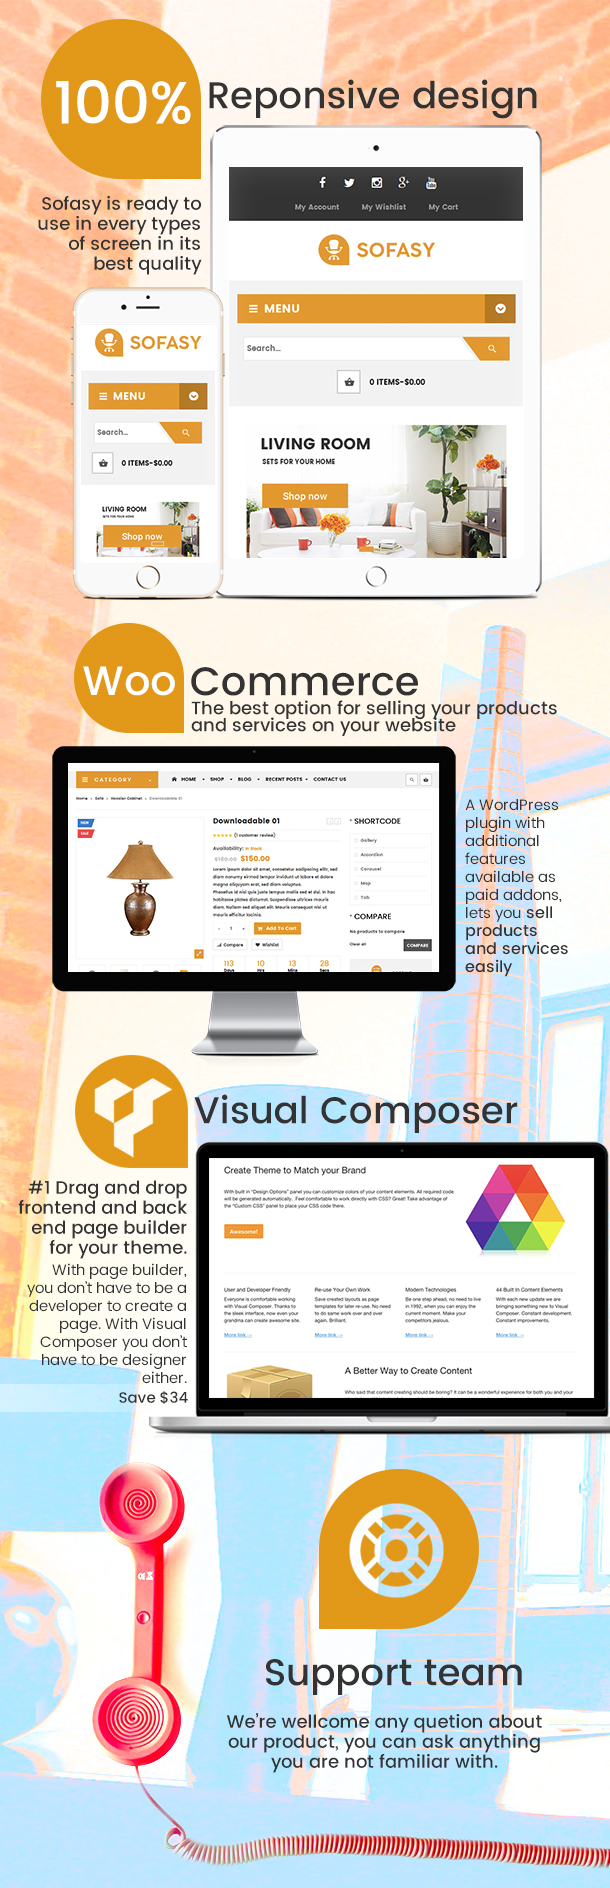 VG Sofasy - Responsives WooCommerce-WordPress-Layout